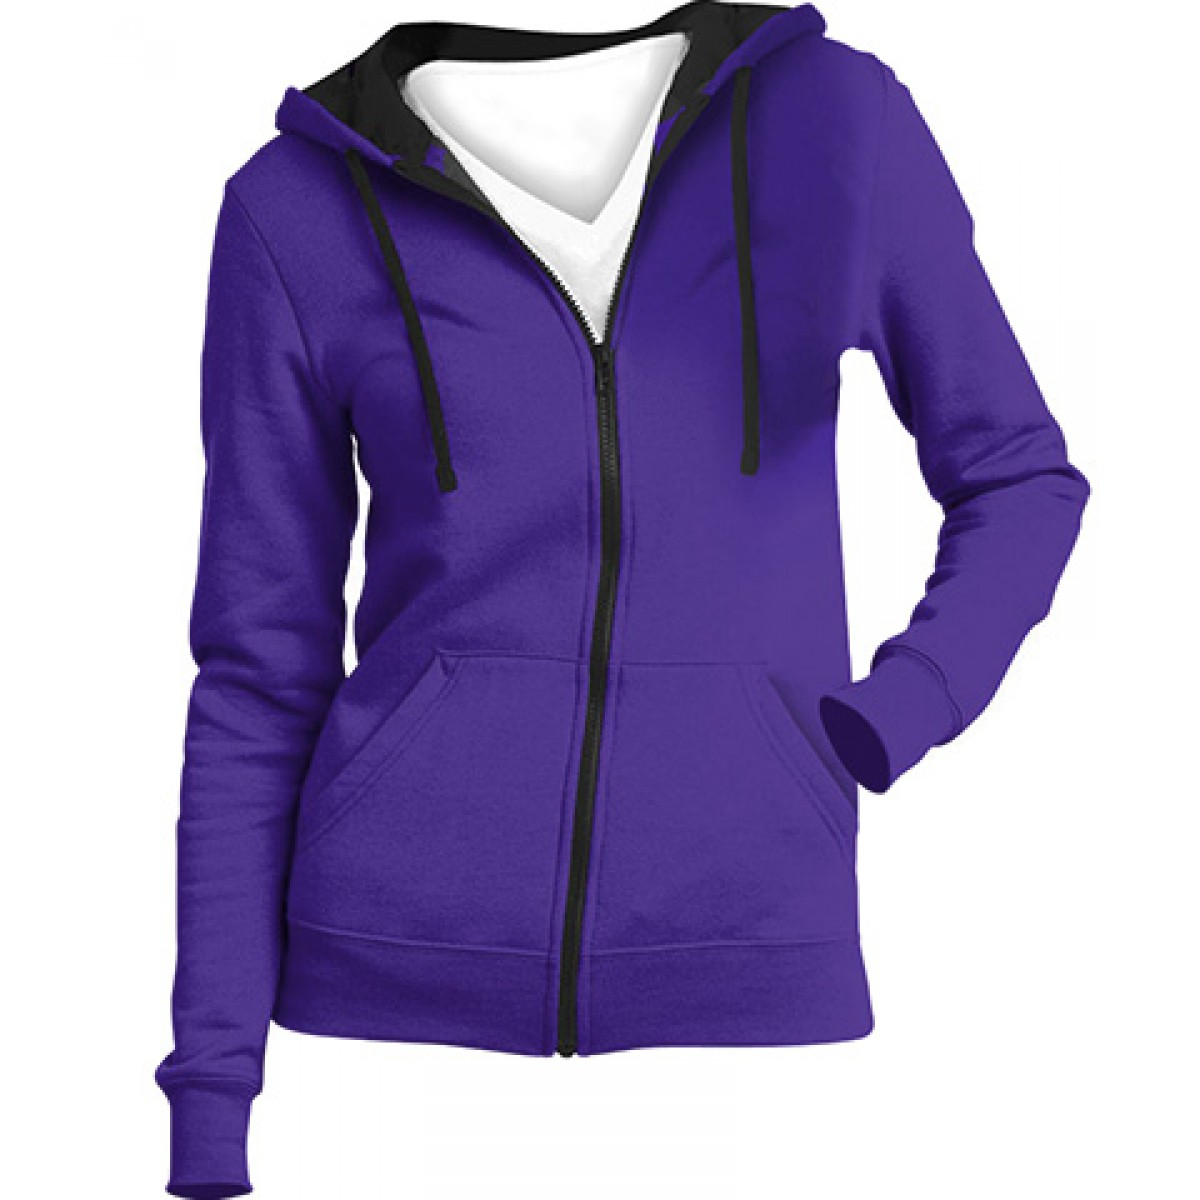 Juniors Full-Zip Hoodie-Purple-3XL